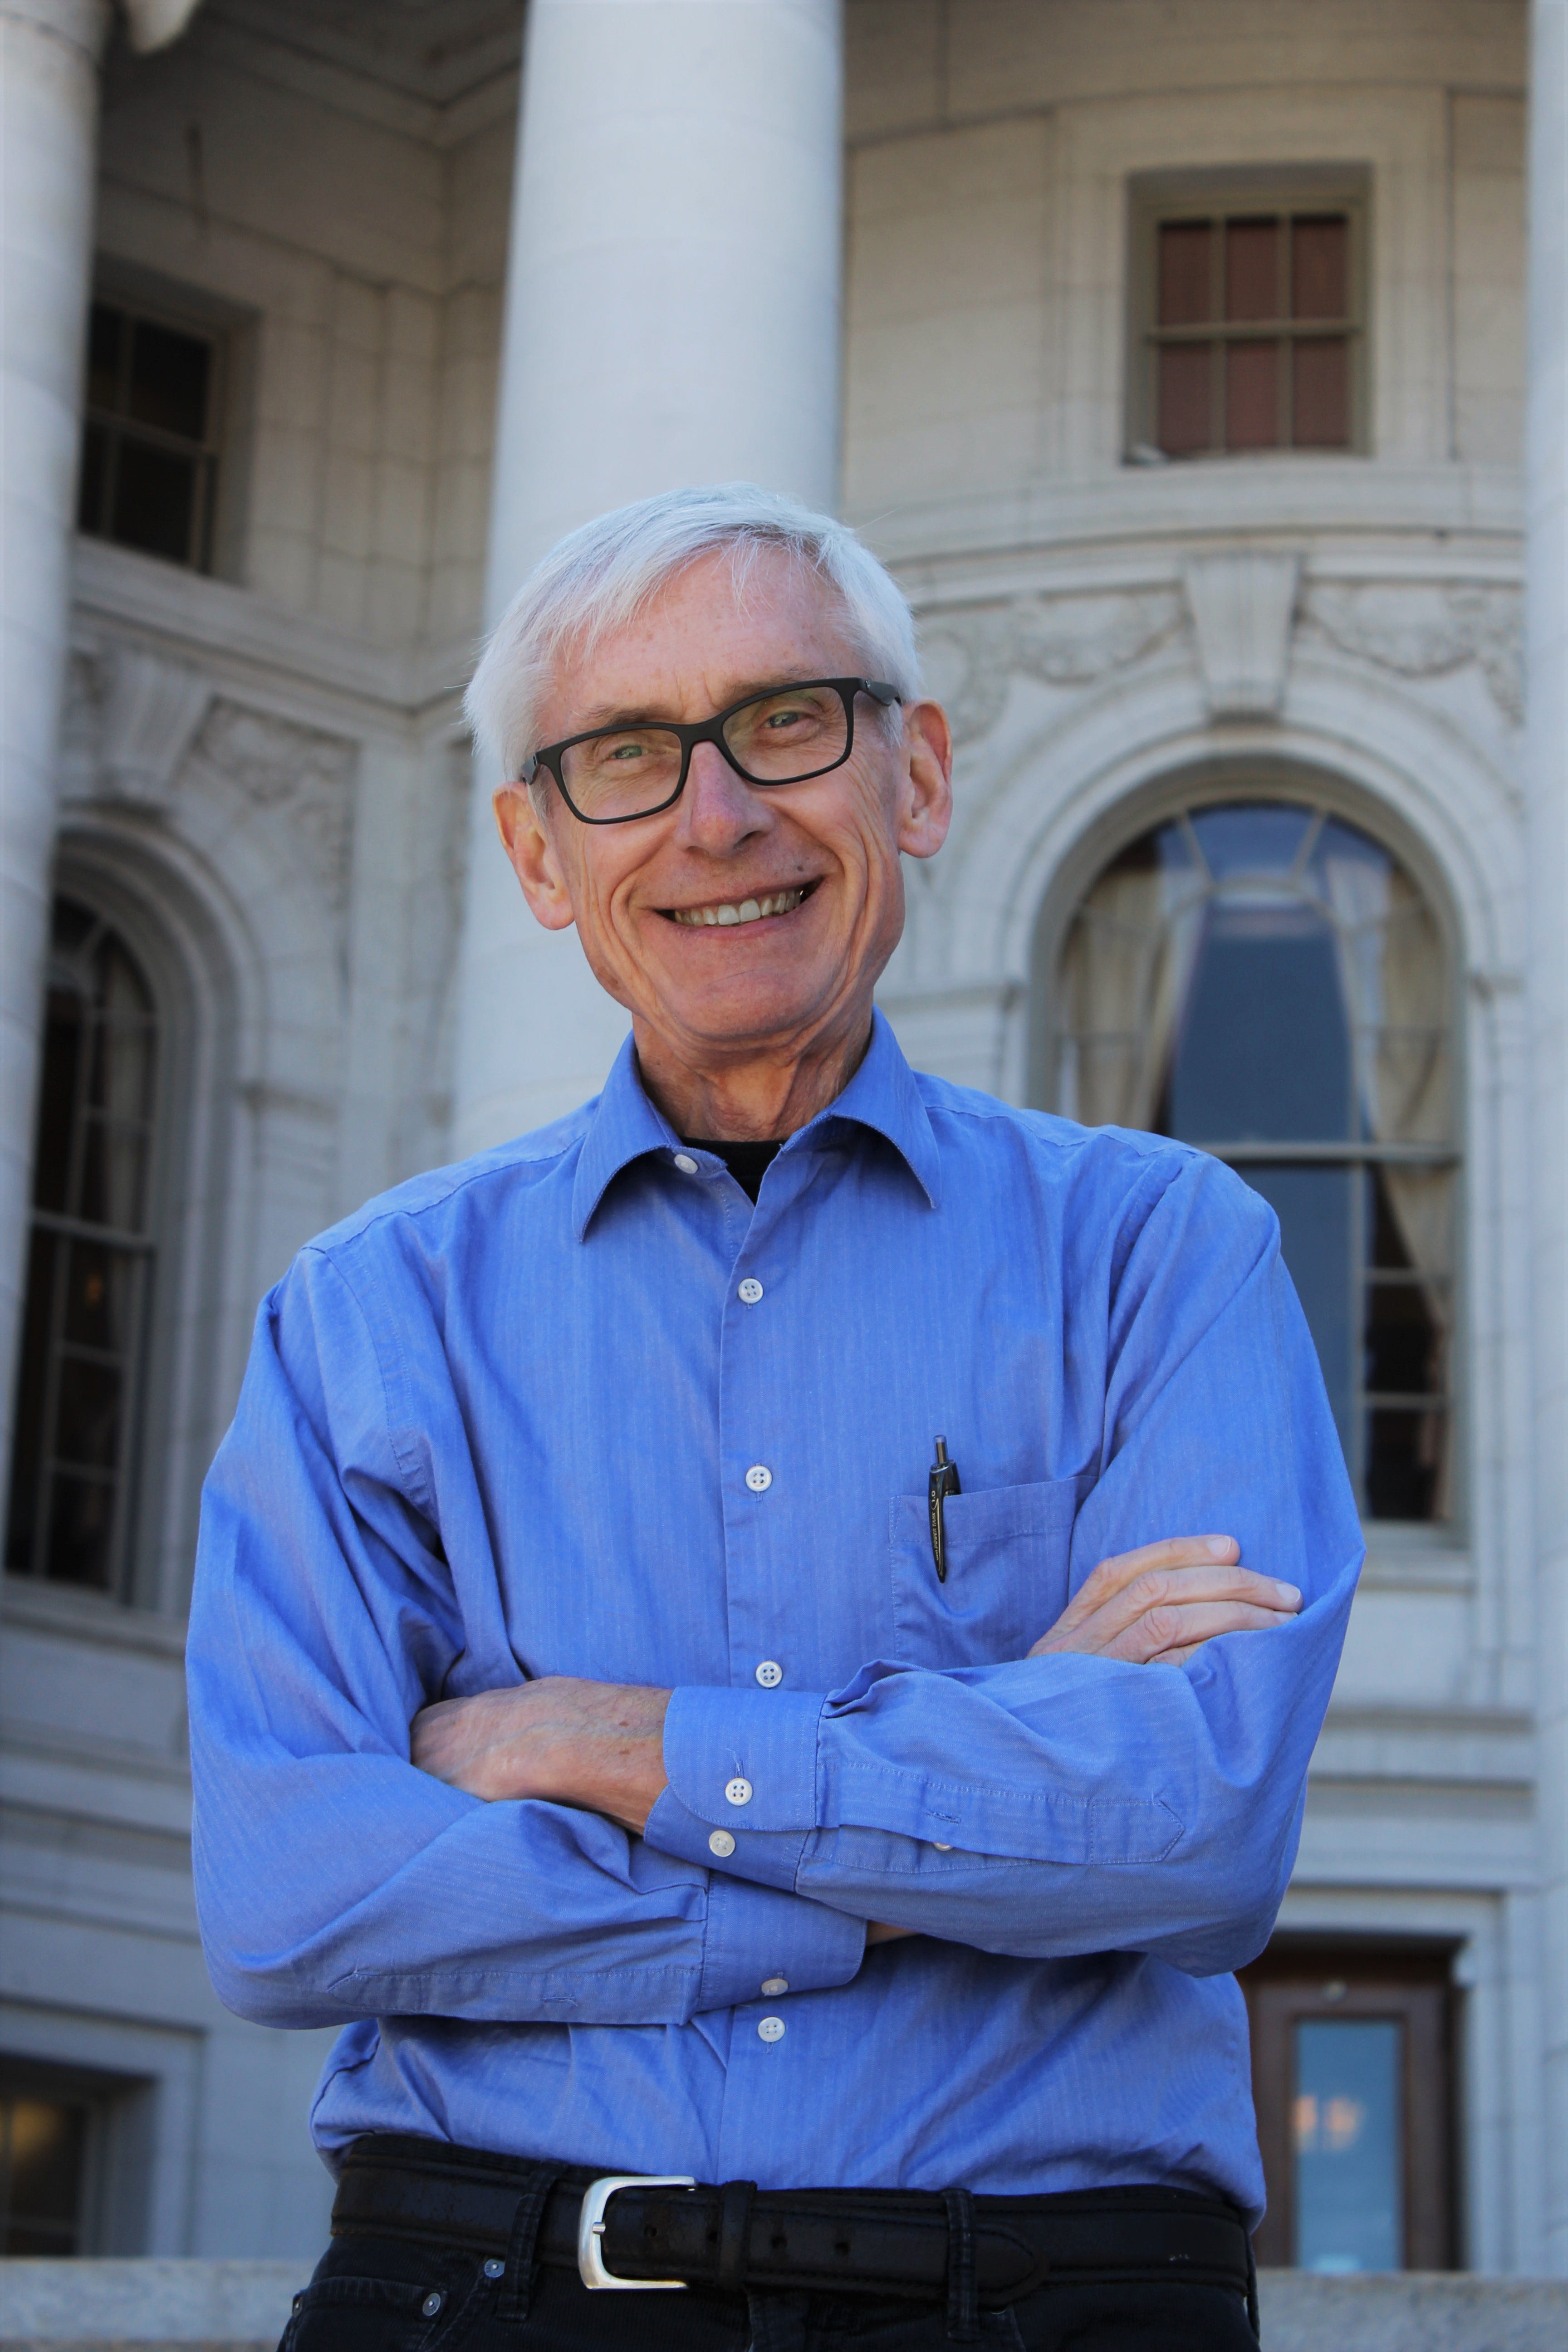 Tony Evers considers a range of tax hikes and cuts as he calls Scott Walker's priorities 'out of whack' | Milwaukee Journal Sentinel